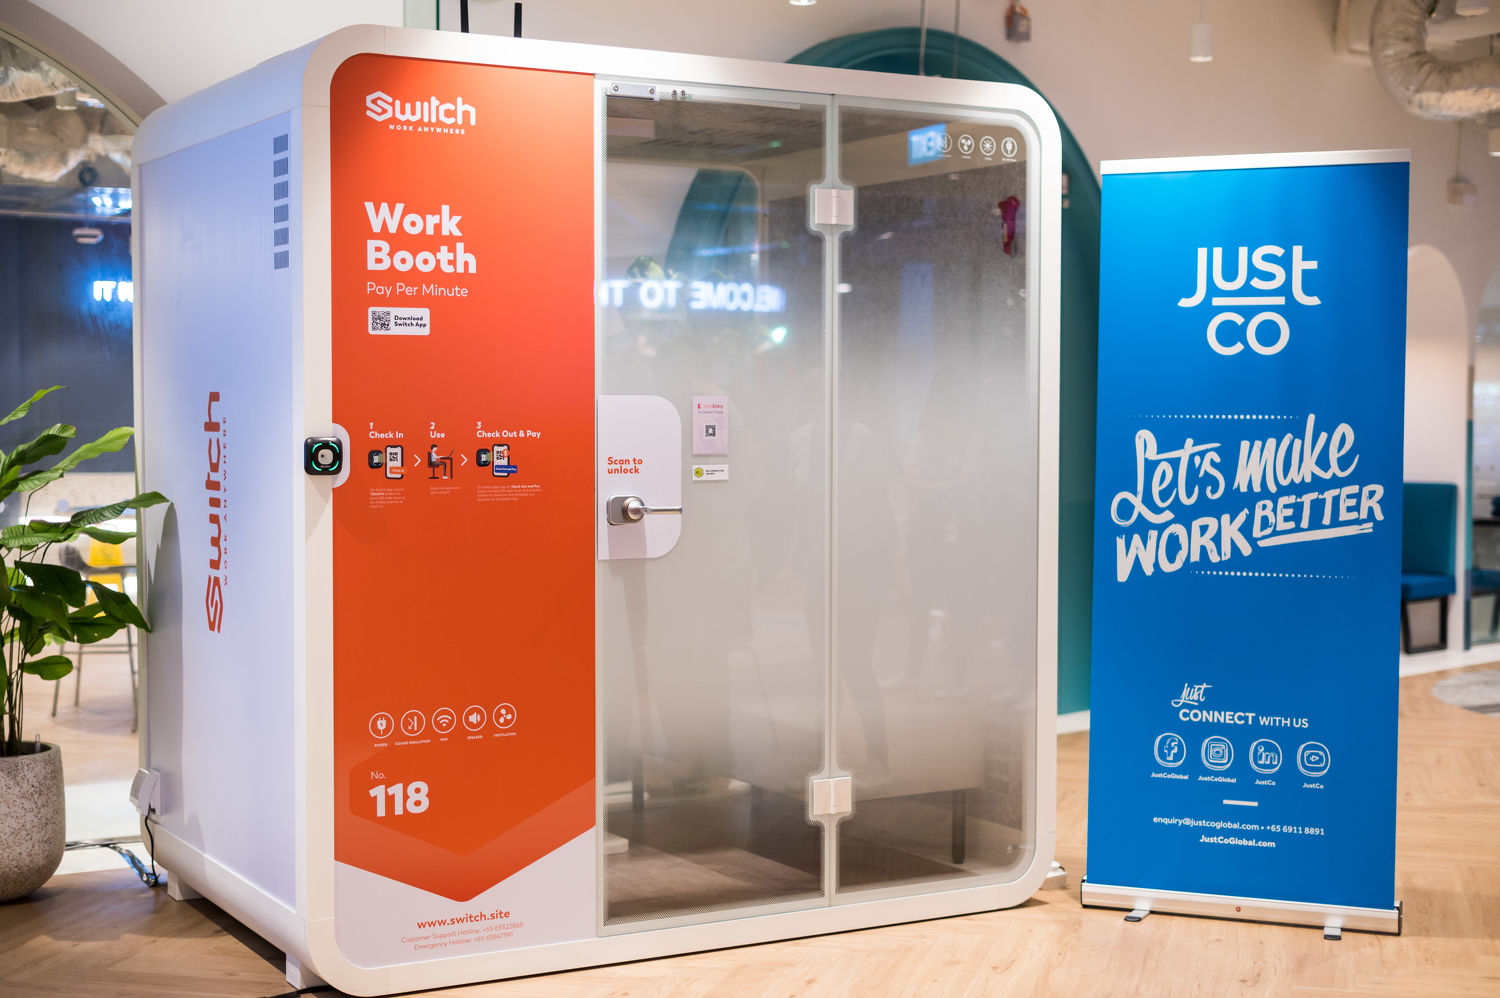 JustCo Switch Booth - EDGEPROP SINGAPORE